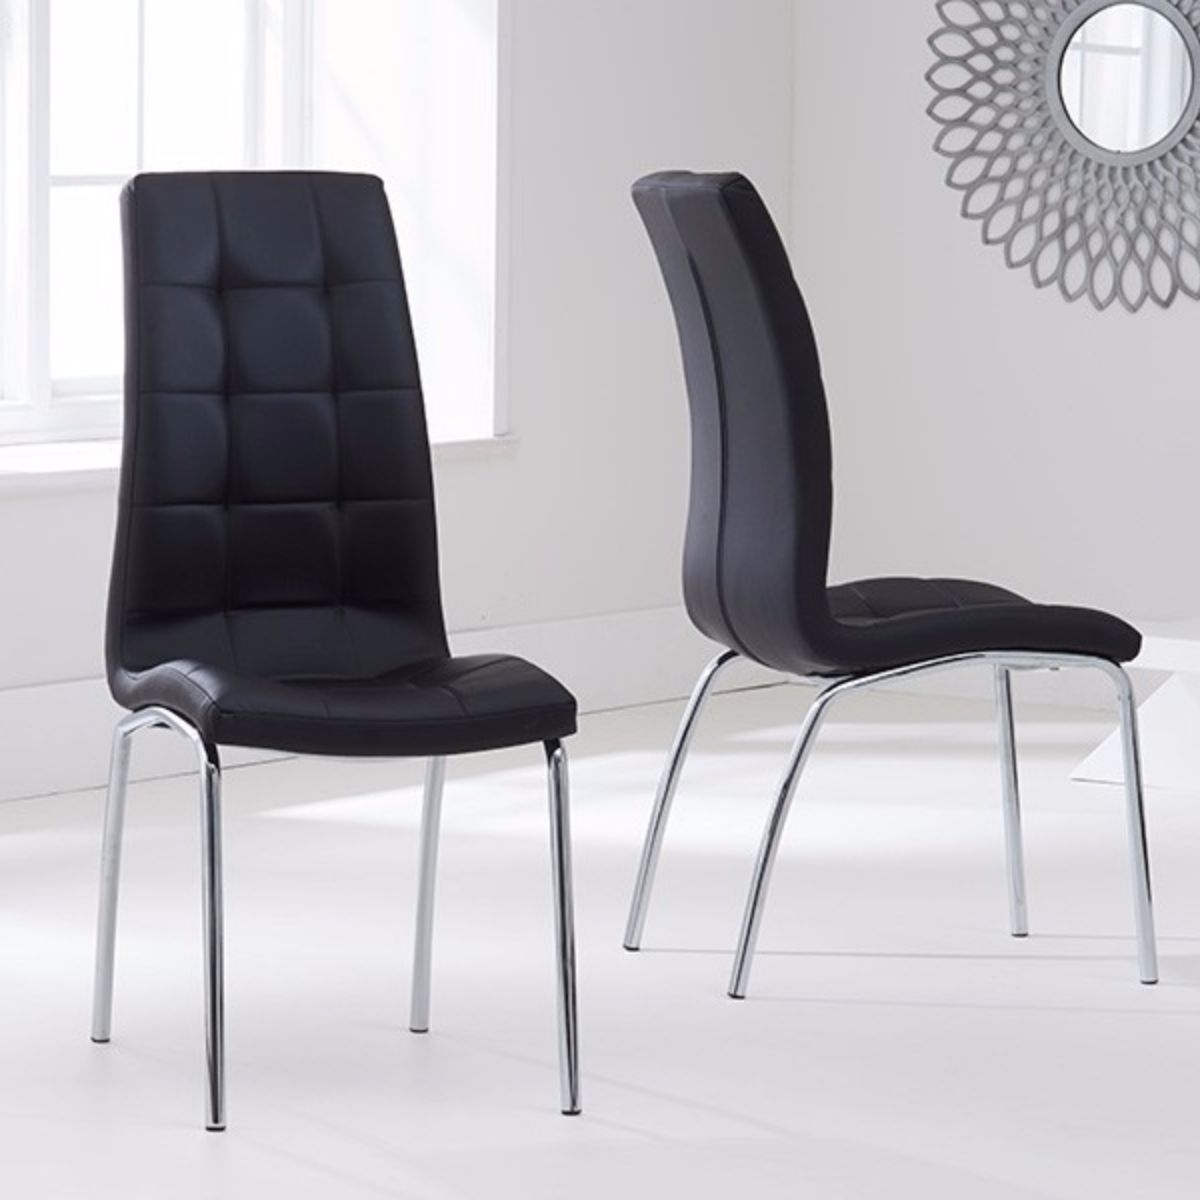 Munich Glass Dining Table with 4 Chairs (Chair Colour: Black)